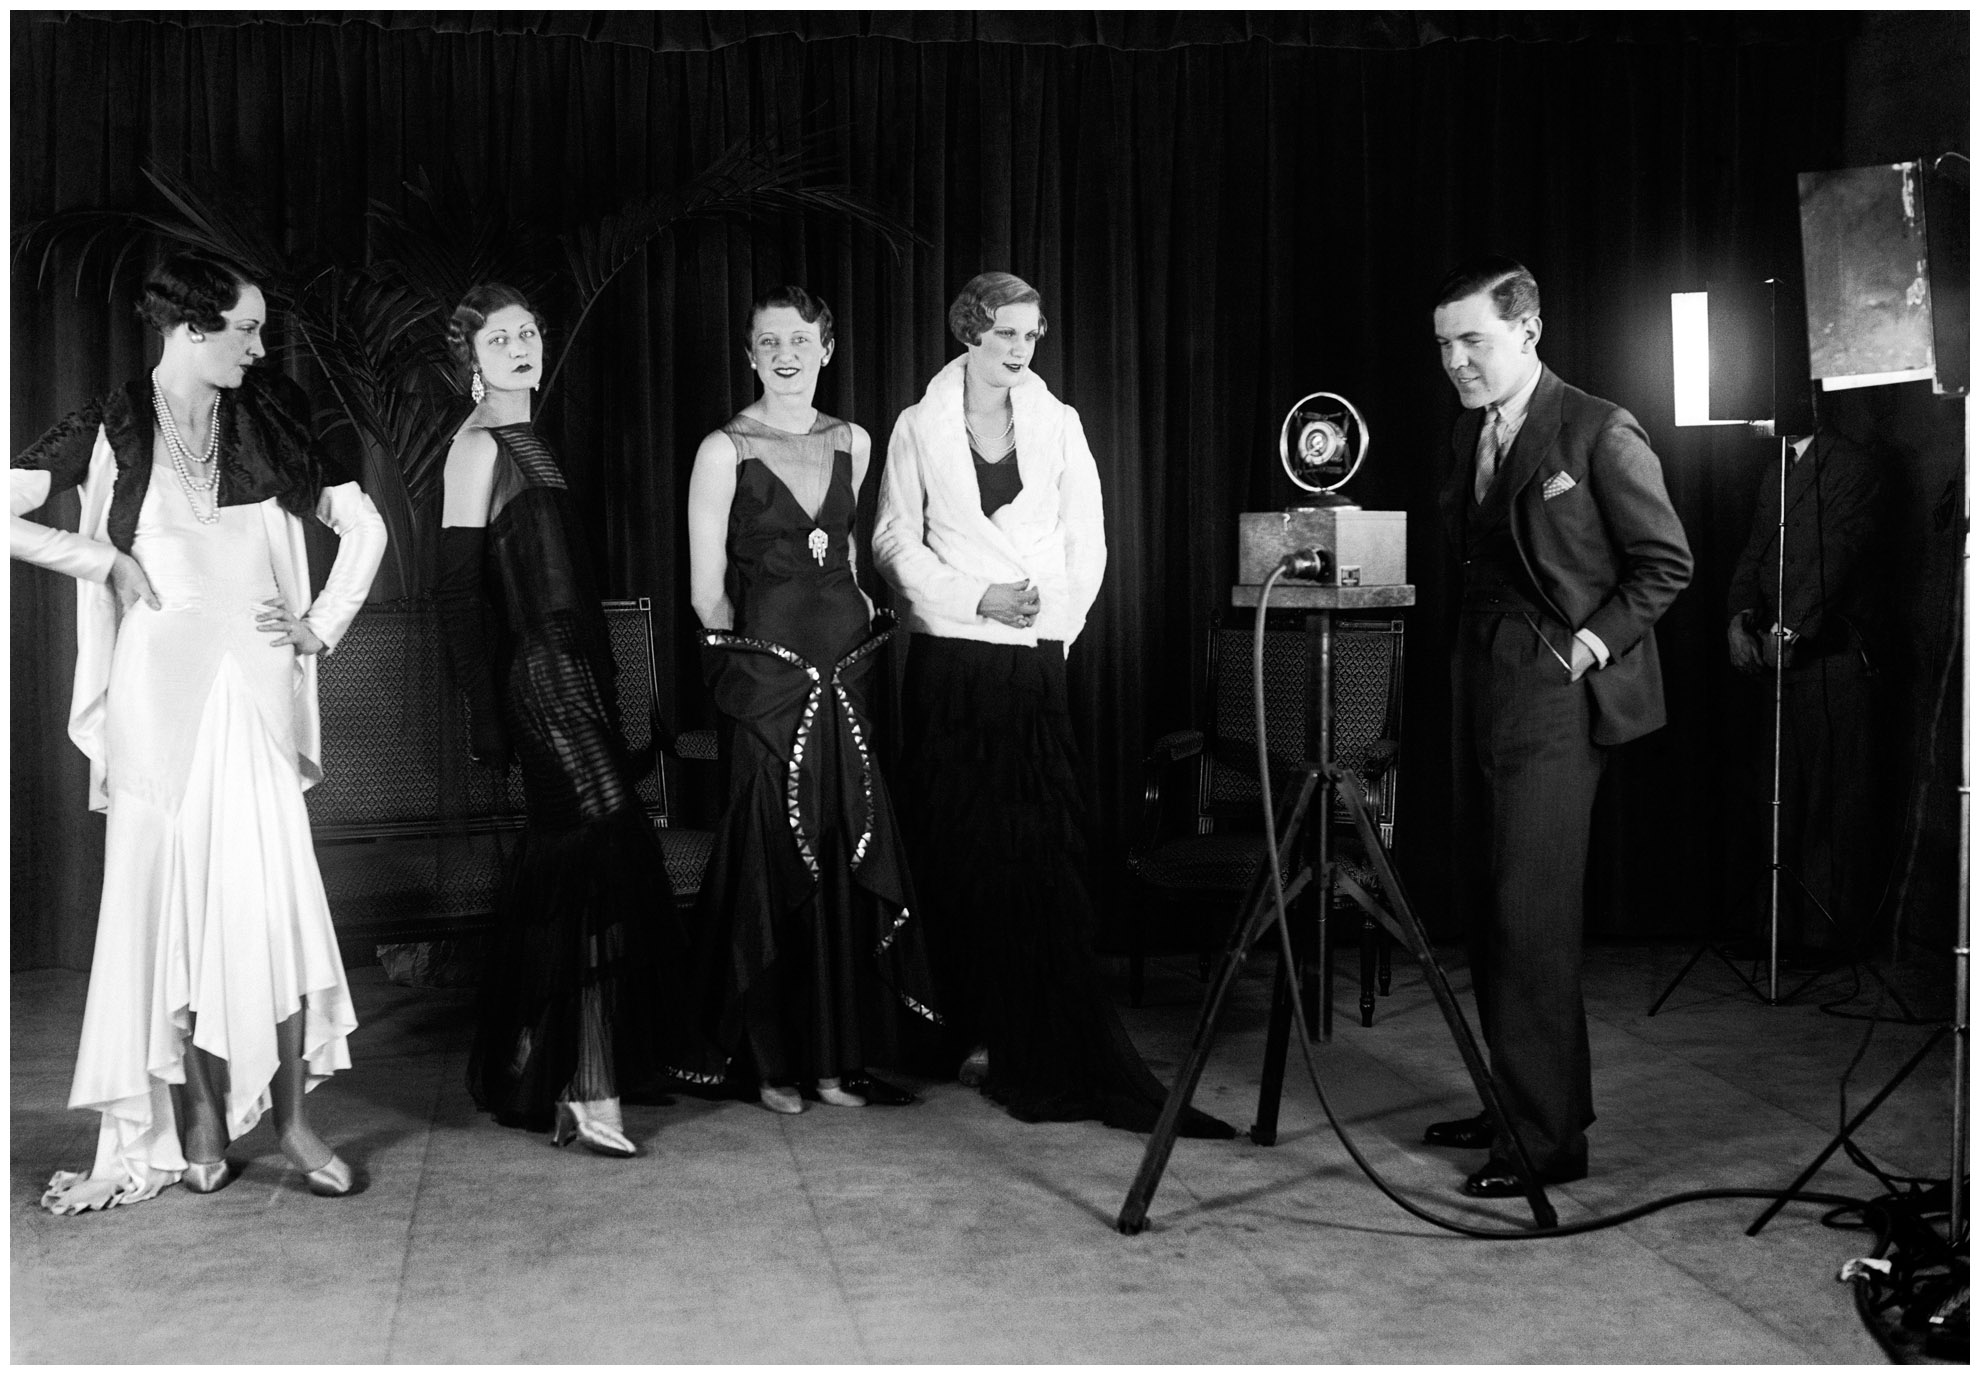 Norman Hartnell with his models in 1930 courtesy of Getty Archive